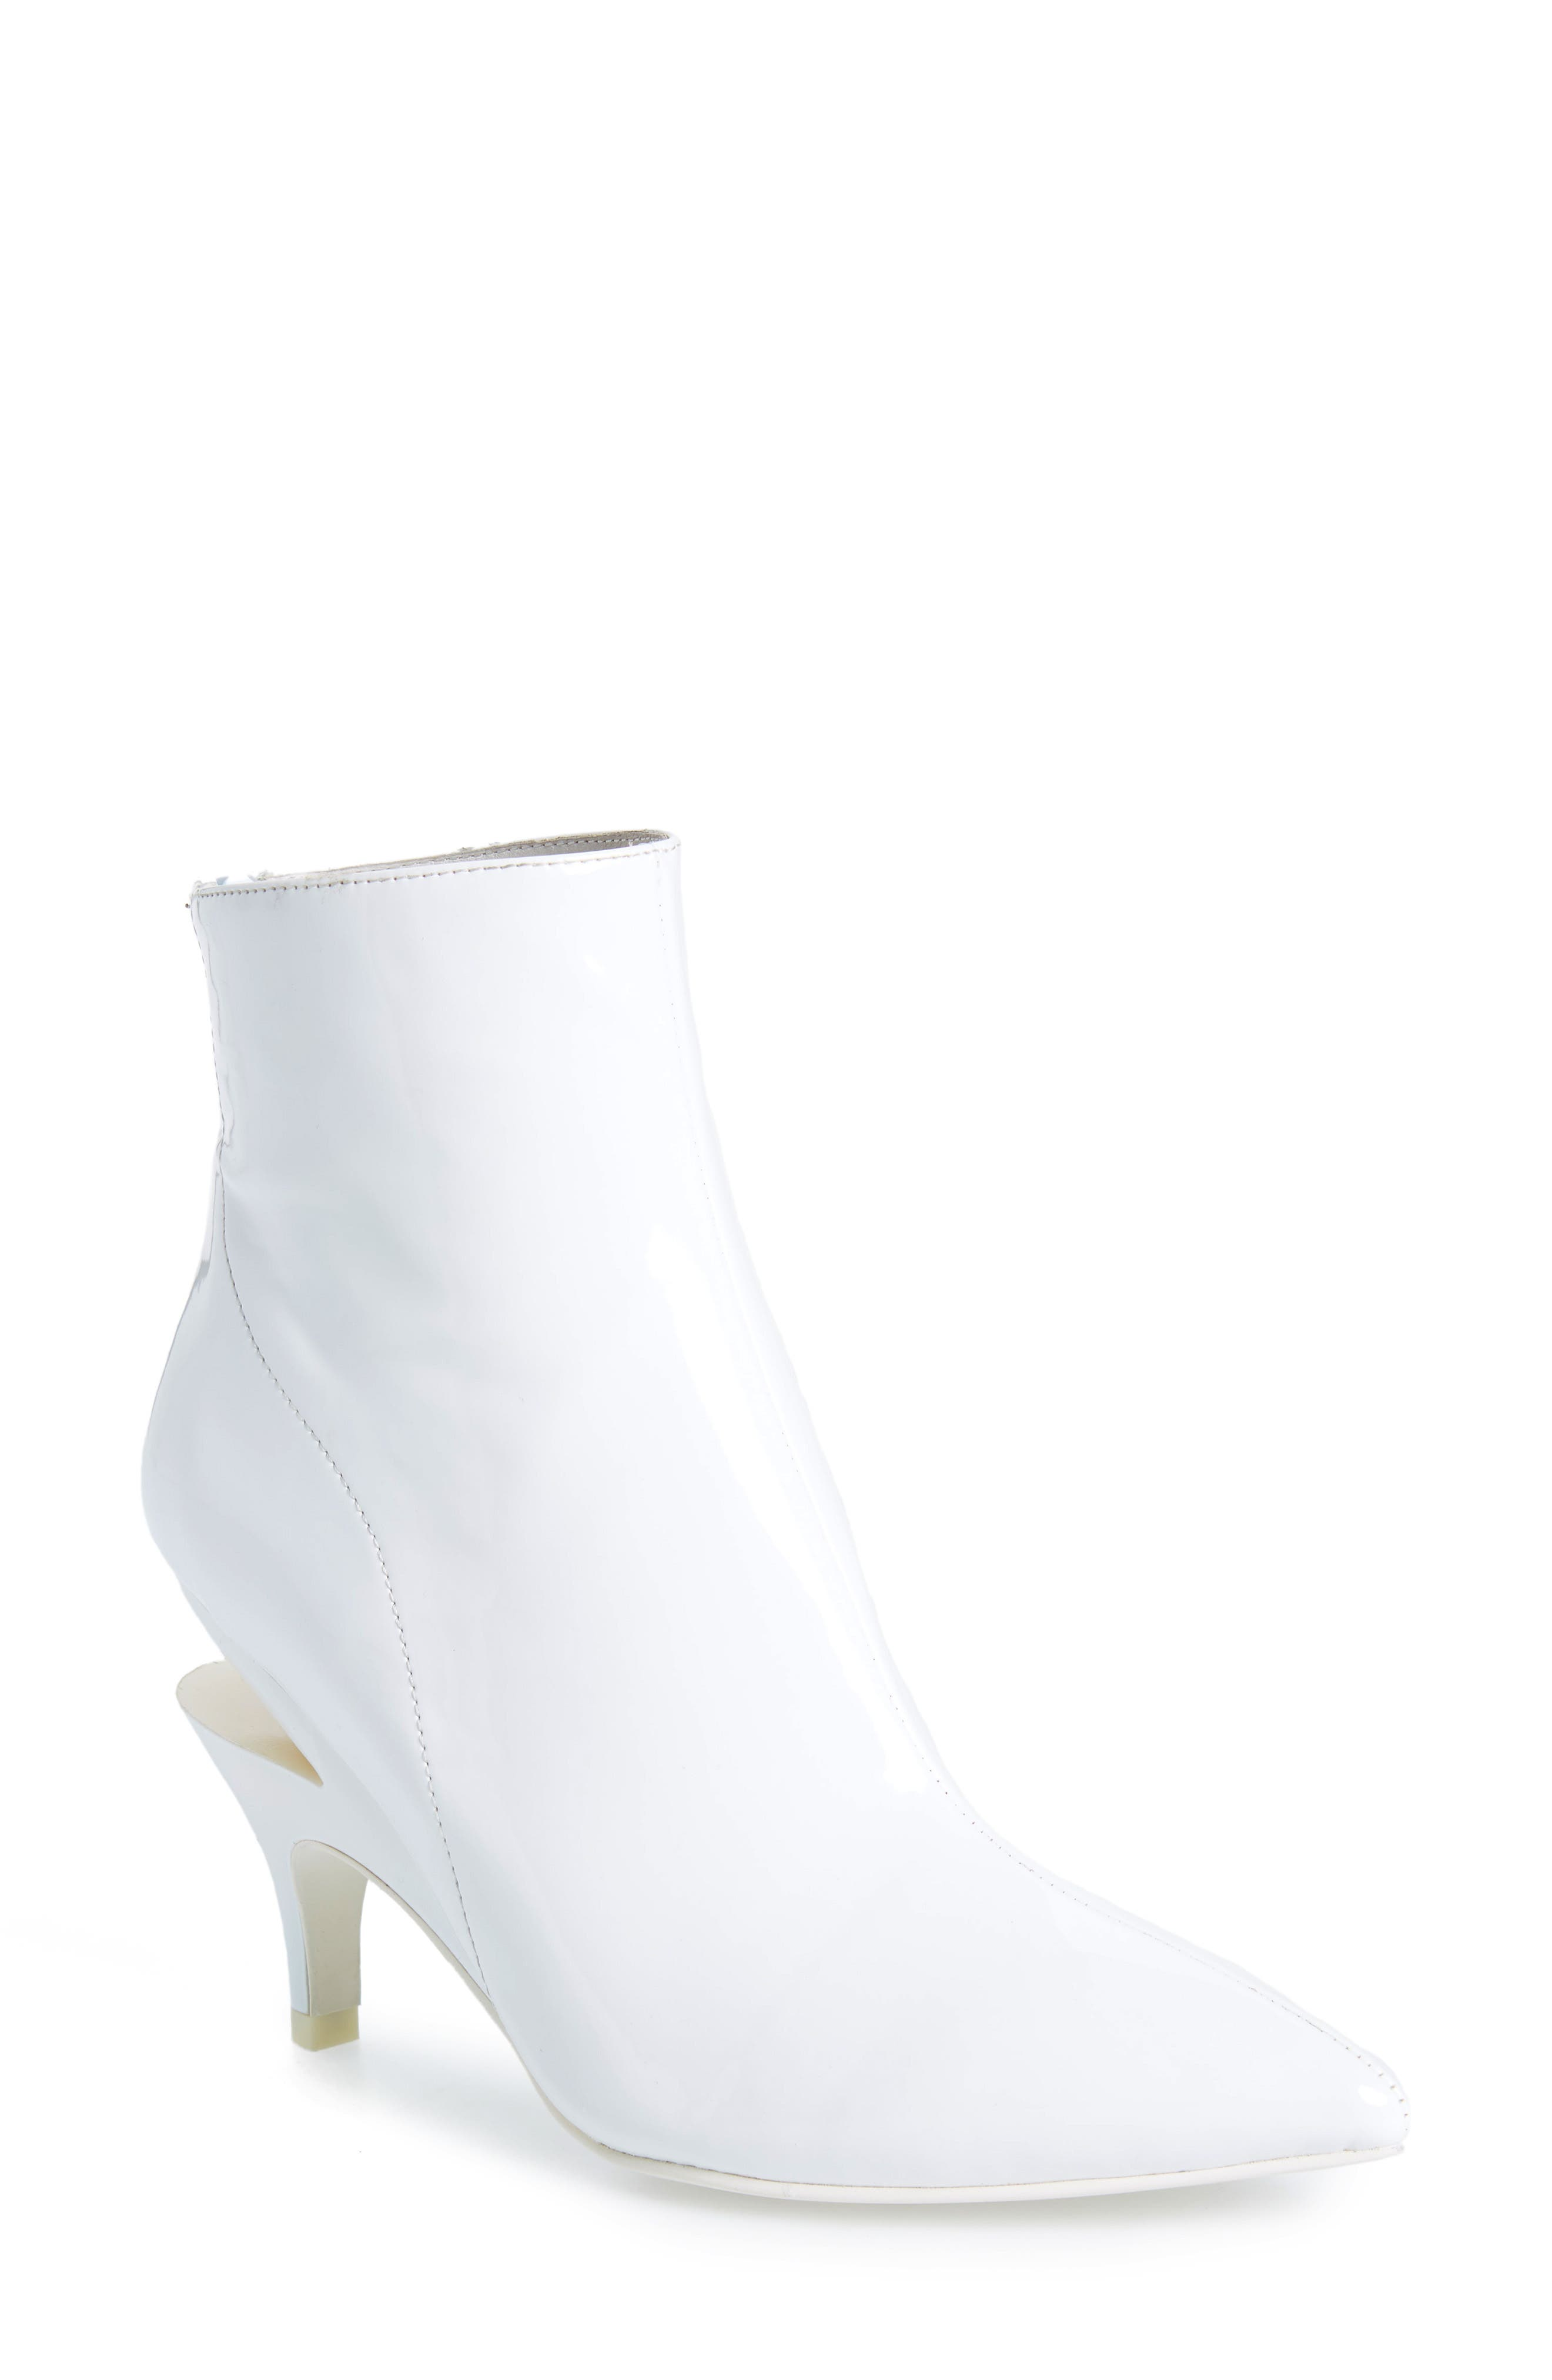 JEFFREY CAMPBELL, Museum Bootie, Main thumbnail 1, color, WHITE PATENT LEATHER